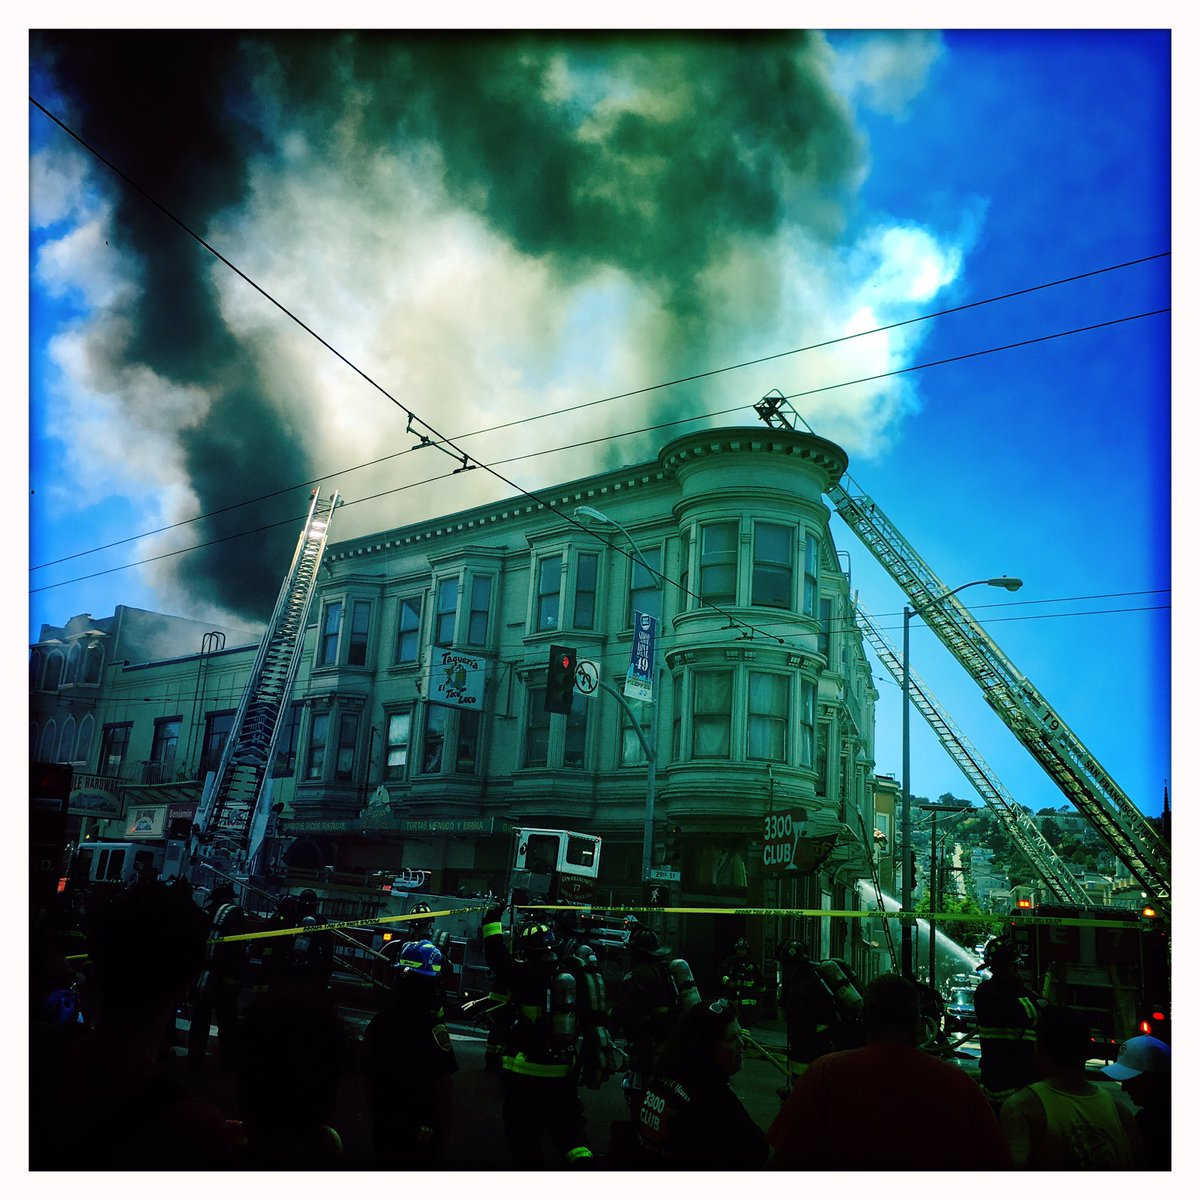 "<div class=""meta image-caption""><div class=""origin-logo origin-image none""><span>none</span></div><span class=""caption-text"">San Francisco firefighters are battling a 4-alarm fire on the 3300 block of Mission St. in Bernal Heights. (Photo submitted to KGO-TV by @mschirmersf/Twitter)</span></div>"